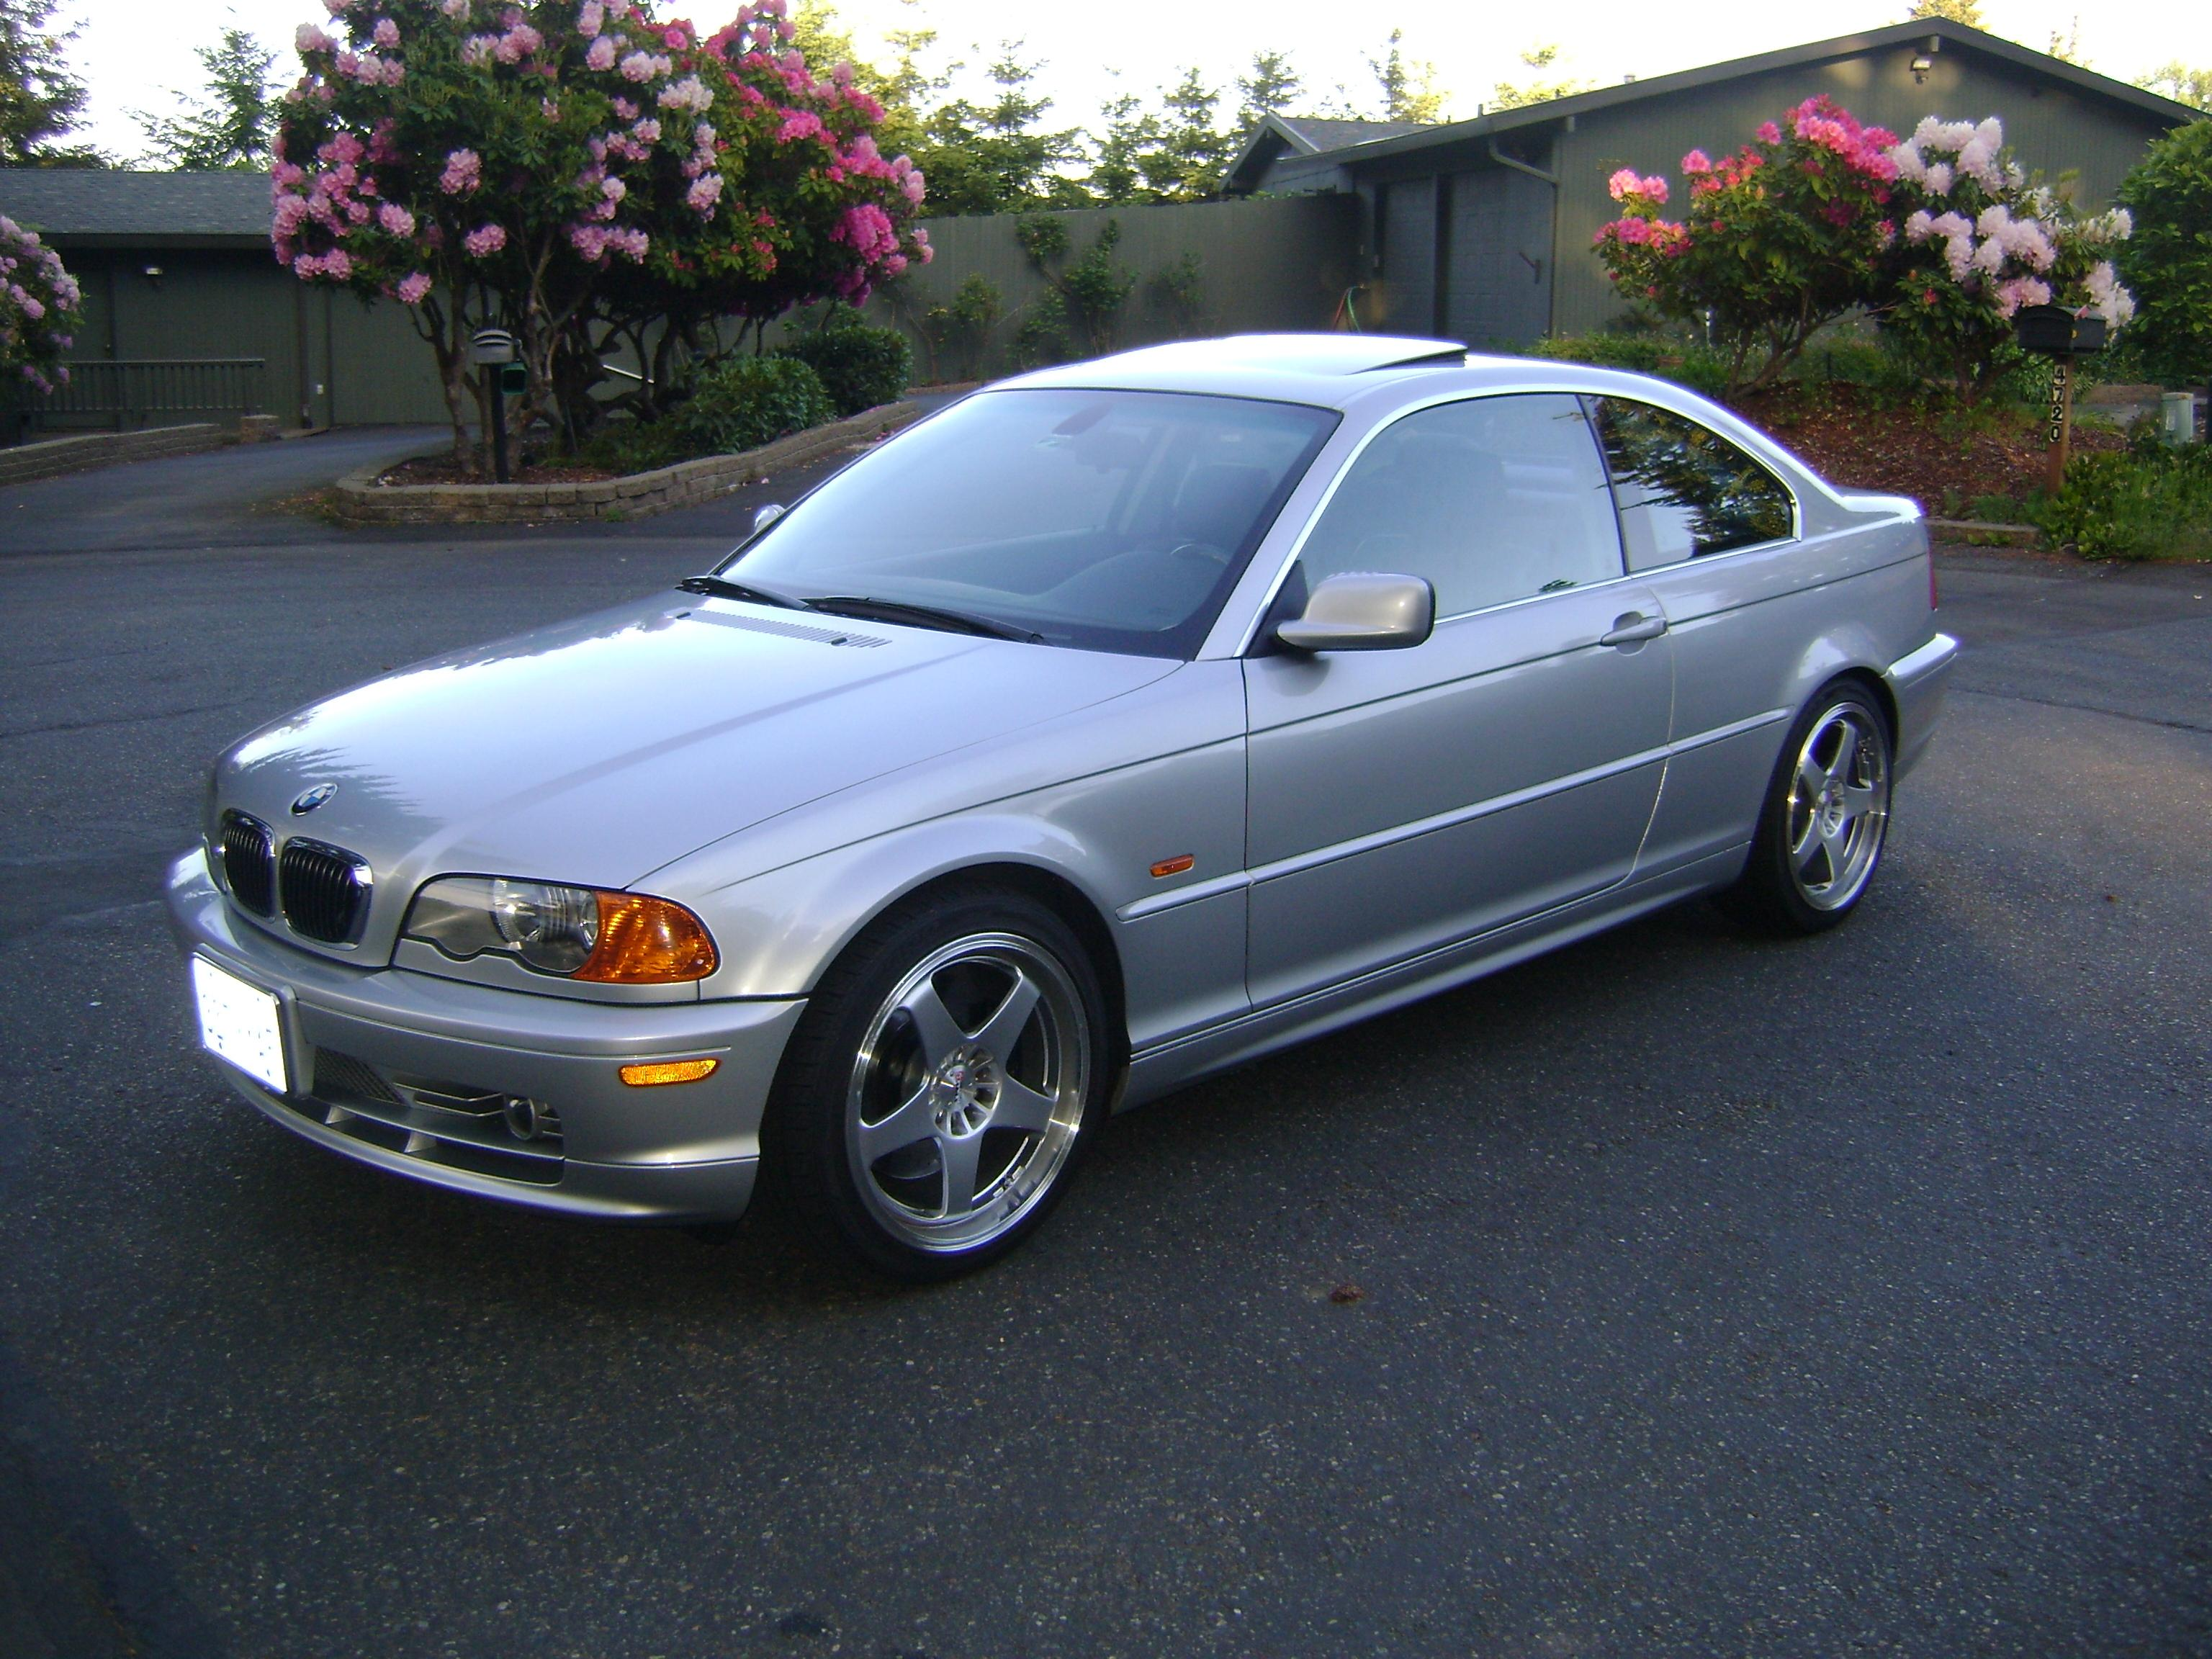 Tmoney24's 2001 BMW 3 Series